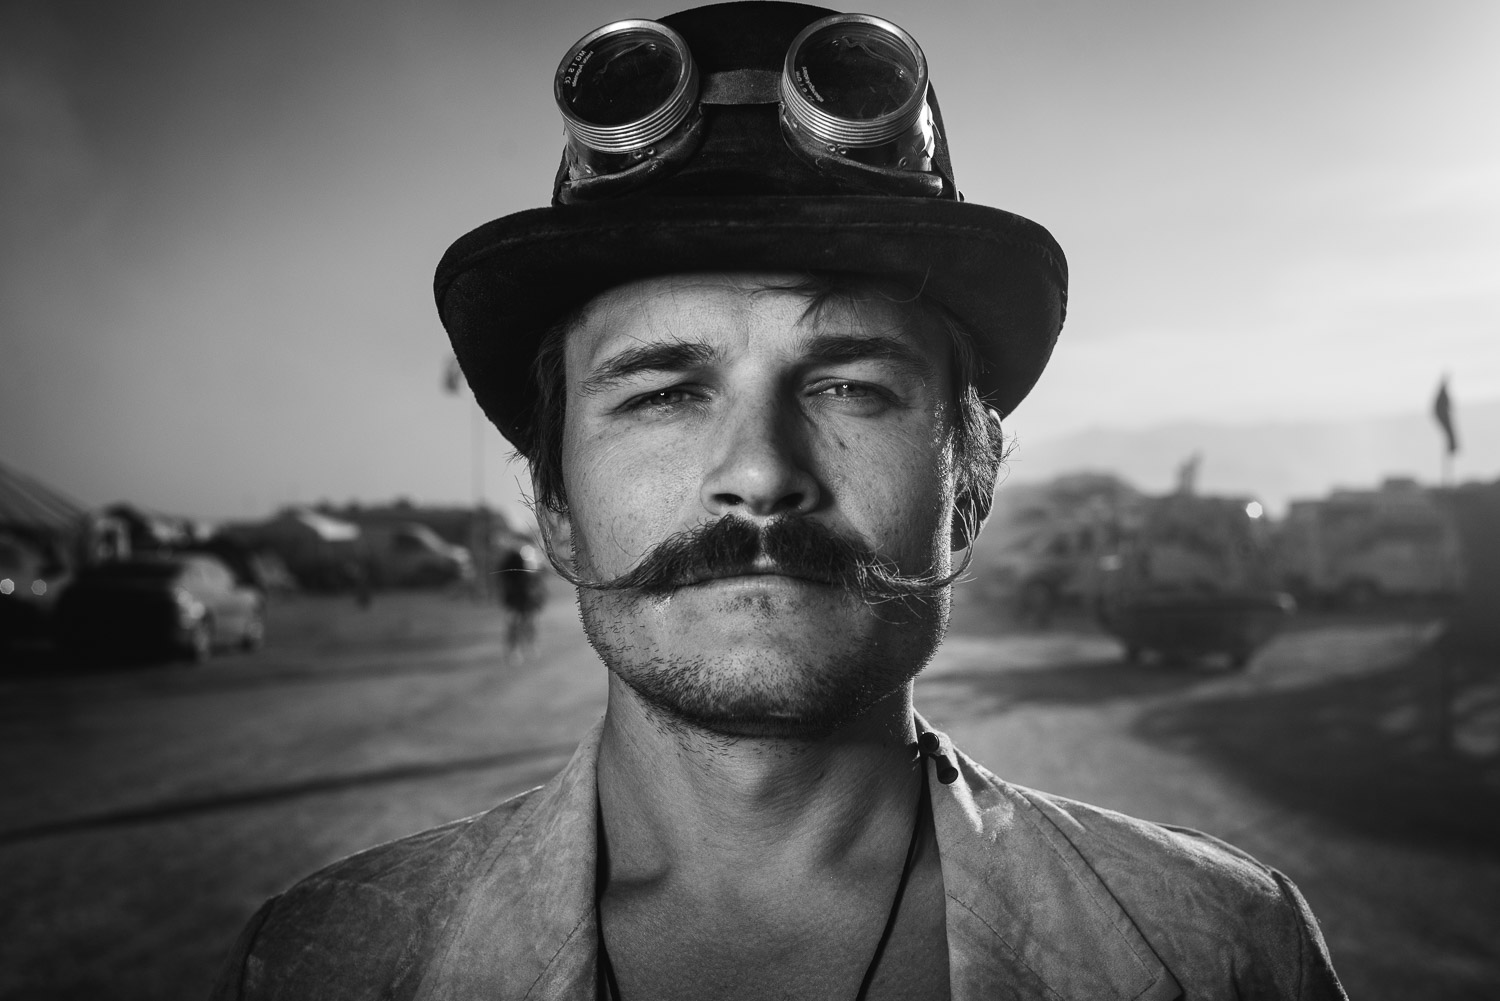 monochrome black and white Burning Man portrait of man with cylinder hat and mustache